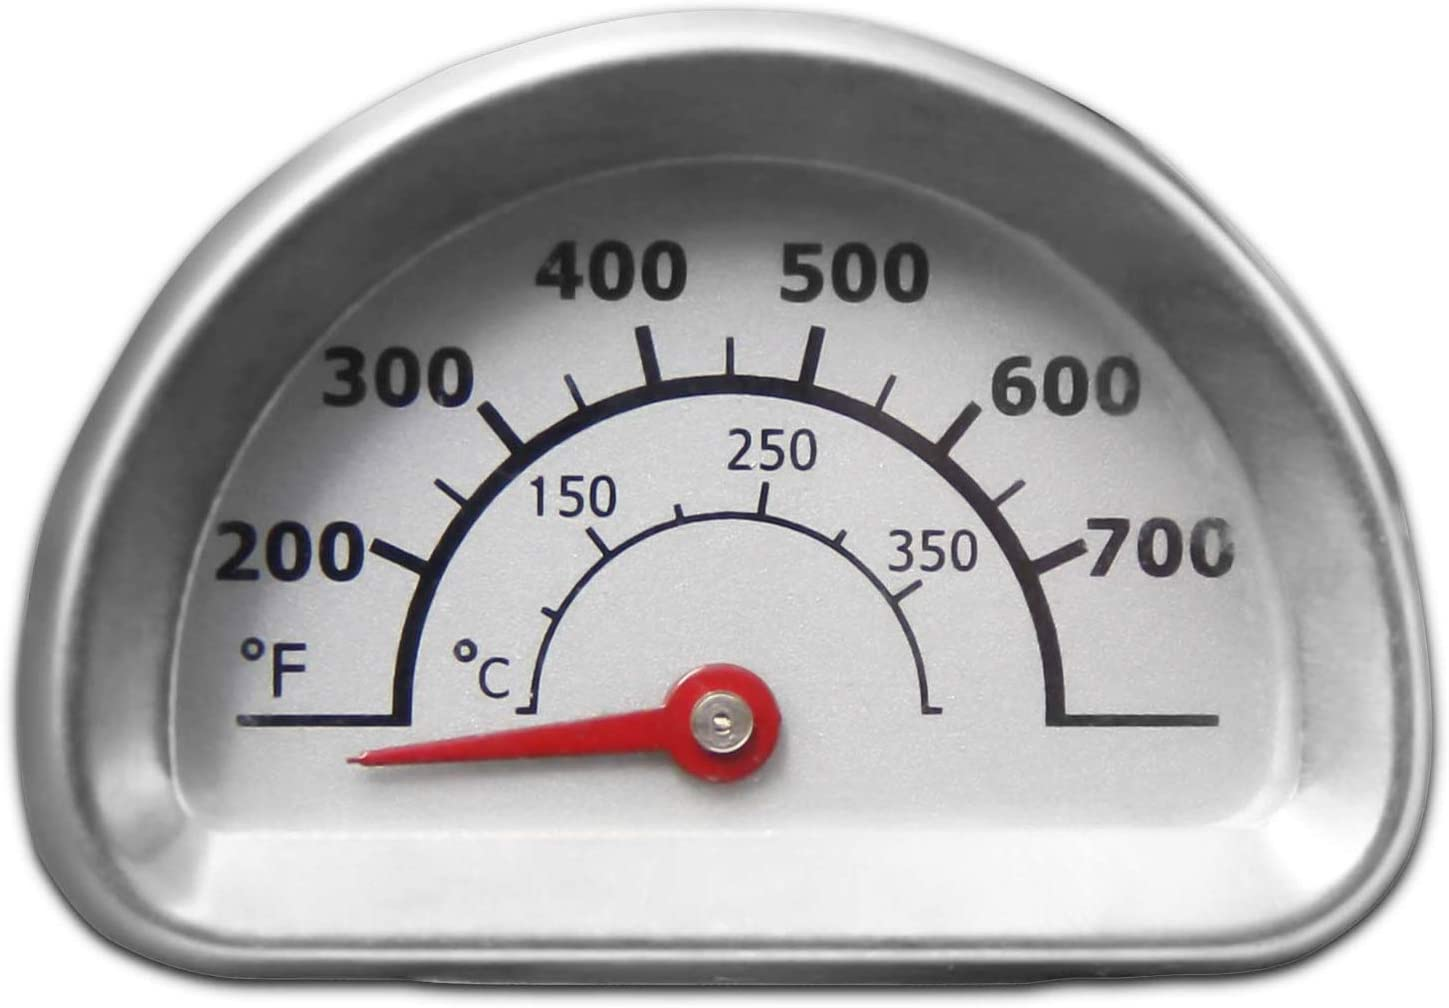 Temperature Gauge Temp Gauge Replacement for Select Charbroil and Kenmore Gas Grill Models Thermometer Hongso Stainless Steel Repair Parts Heat Indicator TG473